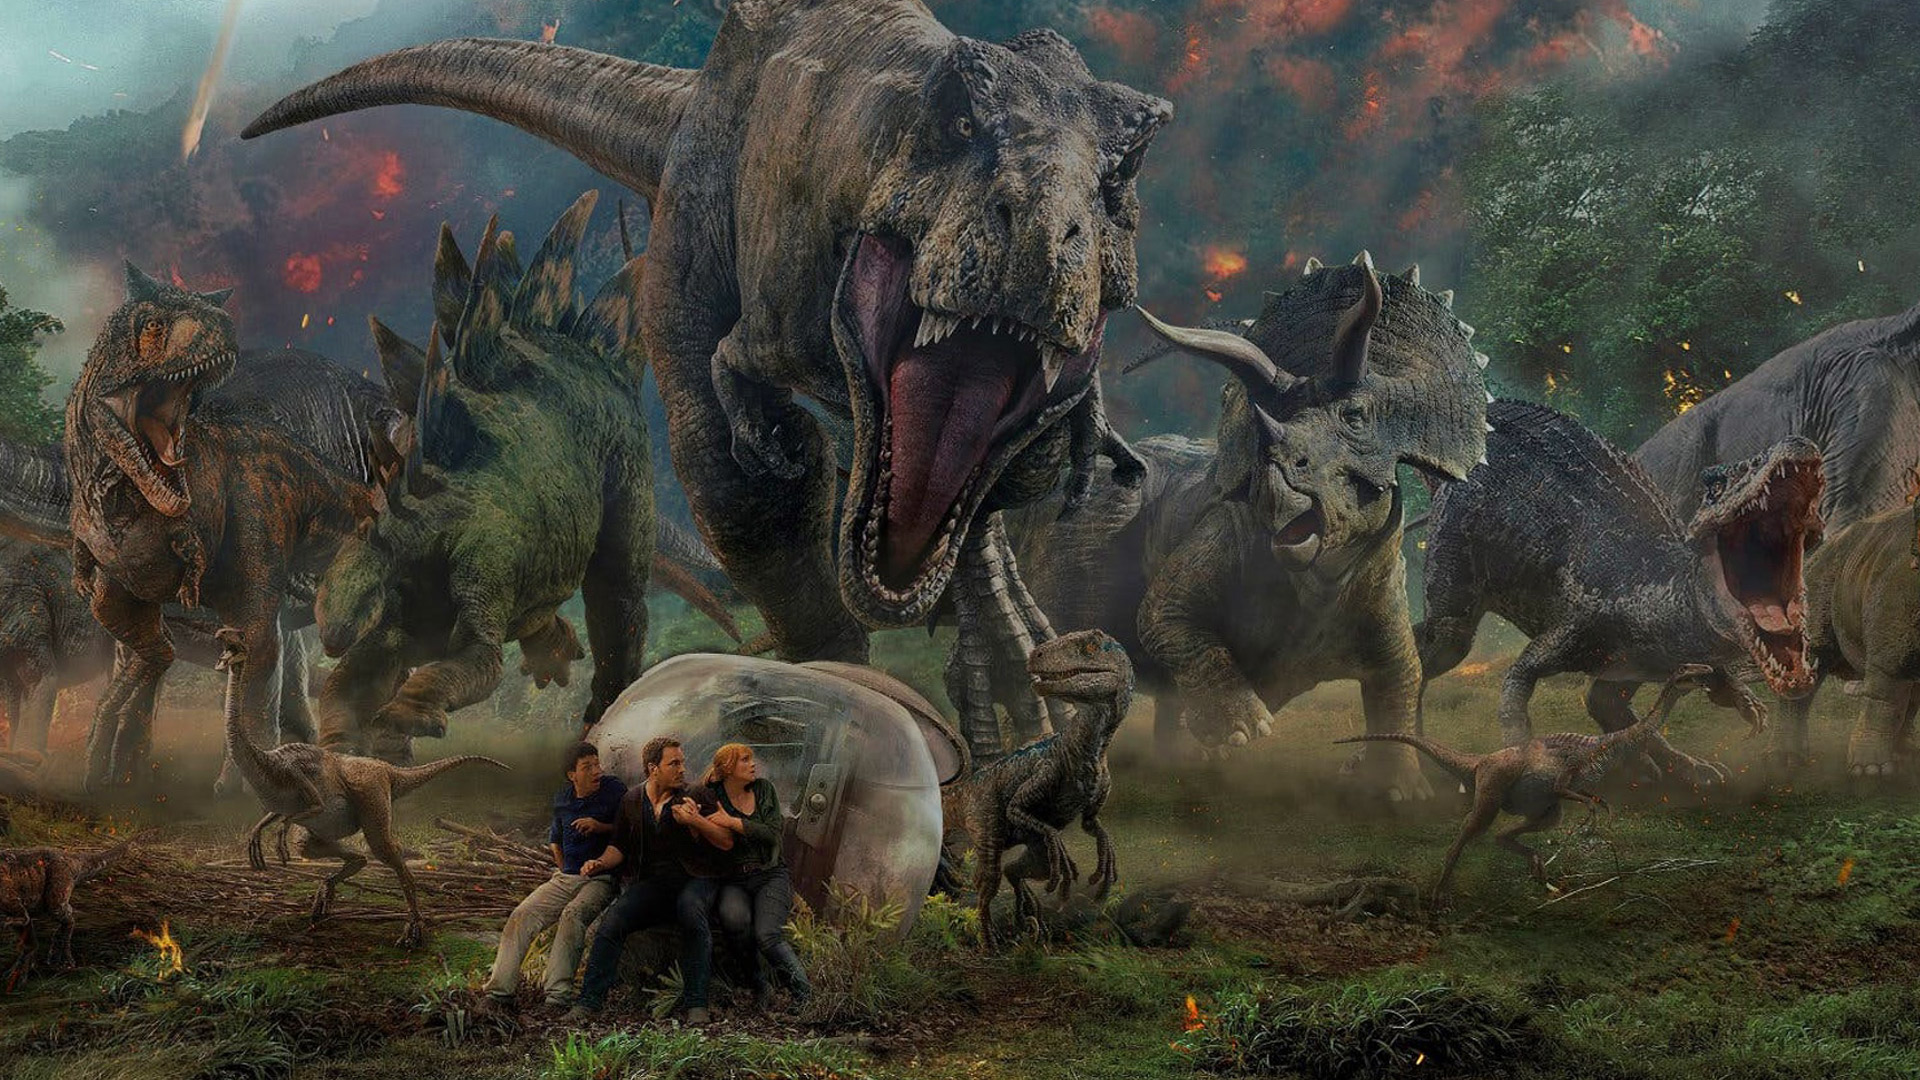 Jurassic World: Fallen Kingdom (2018) Movie Reviews | Popzara Press